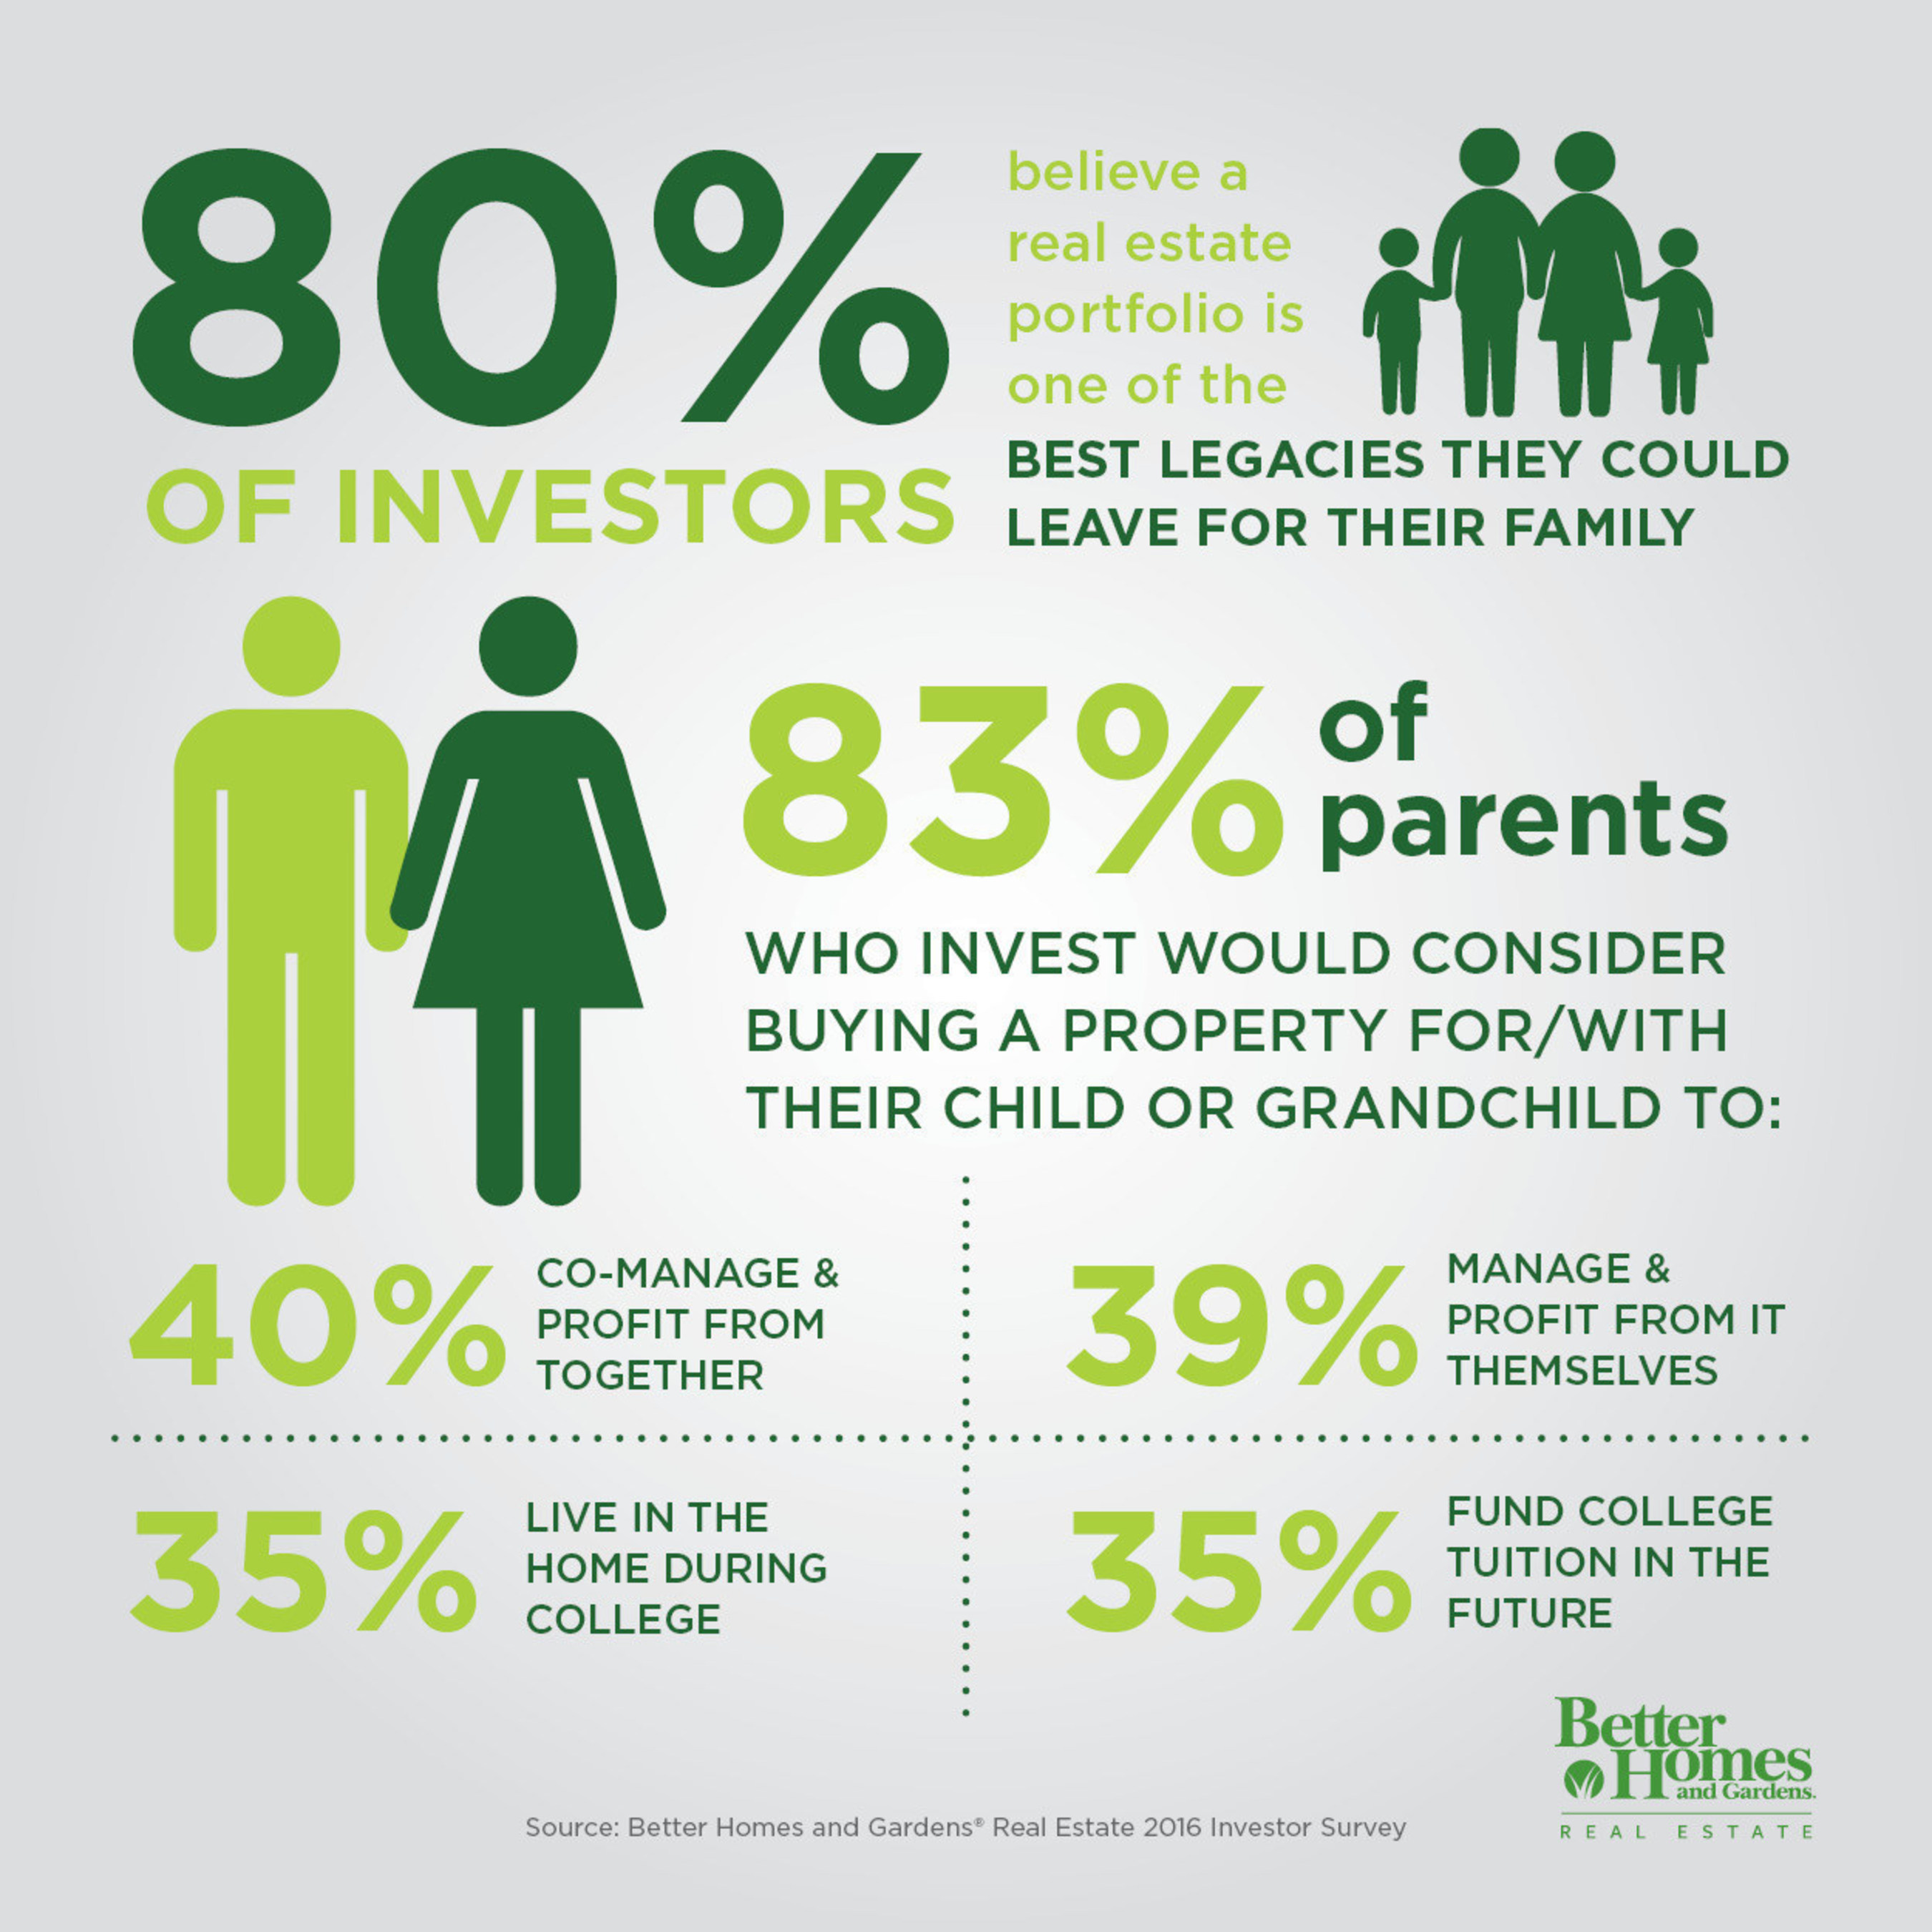 Family Is A Key Consideration When Investing In Real Estate Finds Better  Homes And Gardens Real